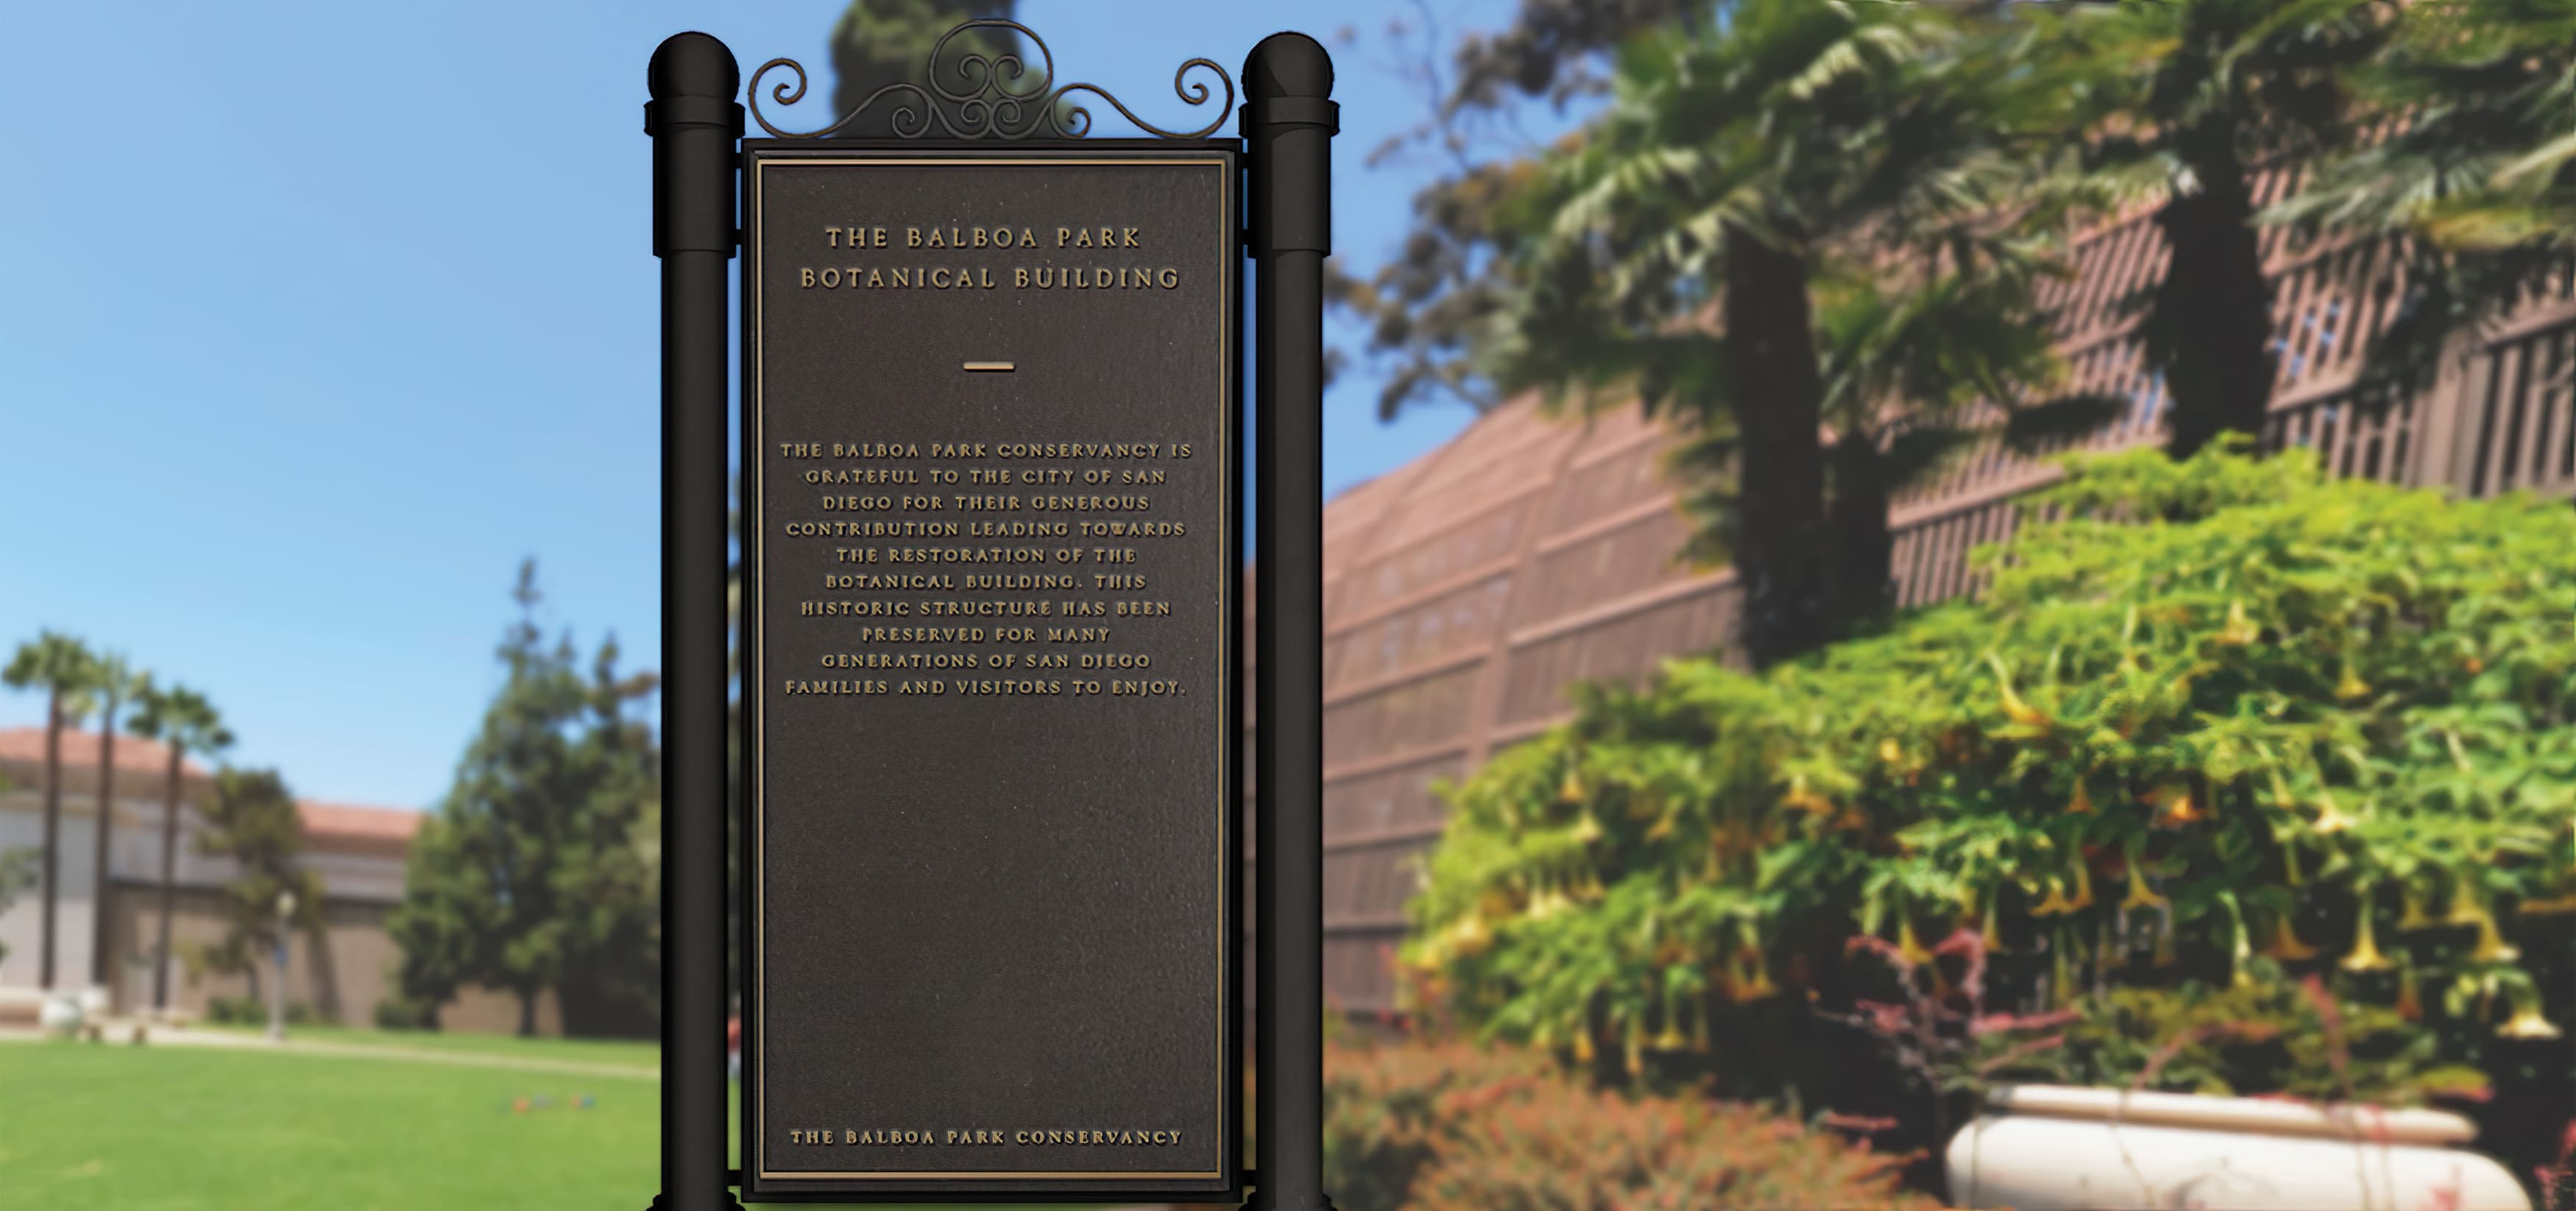 Balboa Botanical Building in San Diego, California. RSM Design performed services such as Wayfinding Signage, Exhibit Design, Donor Recognition, and Placemaking.